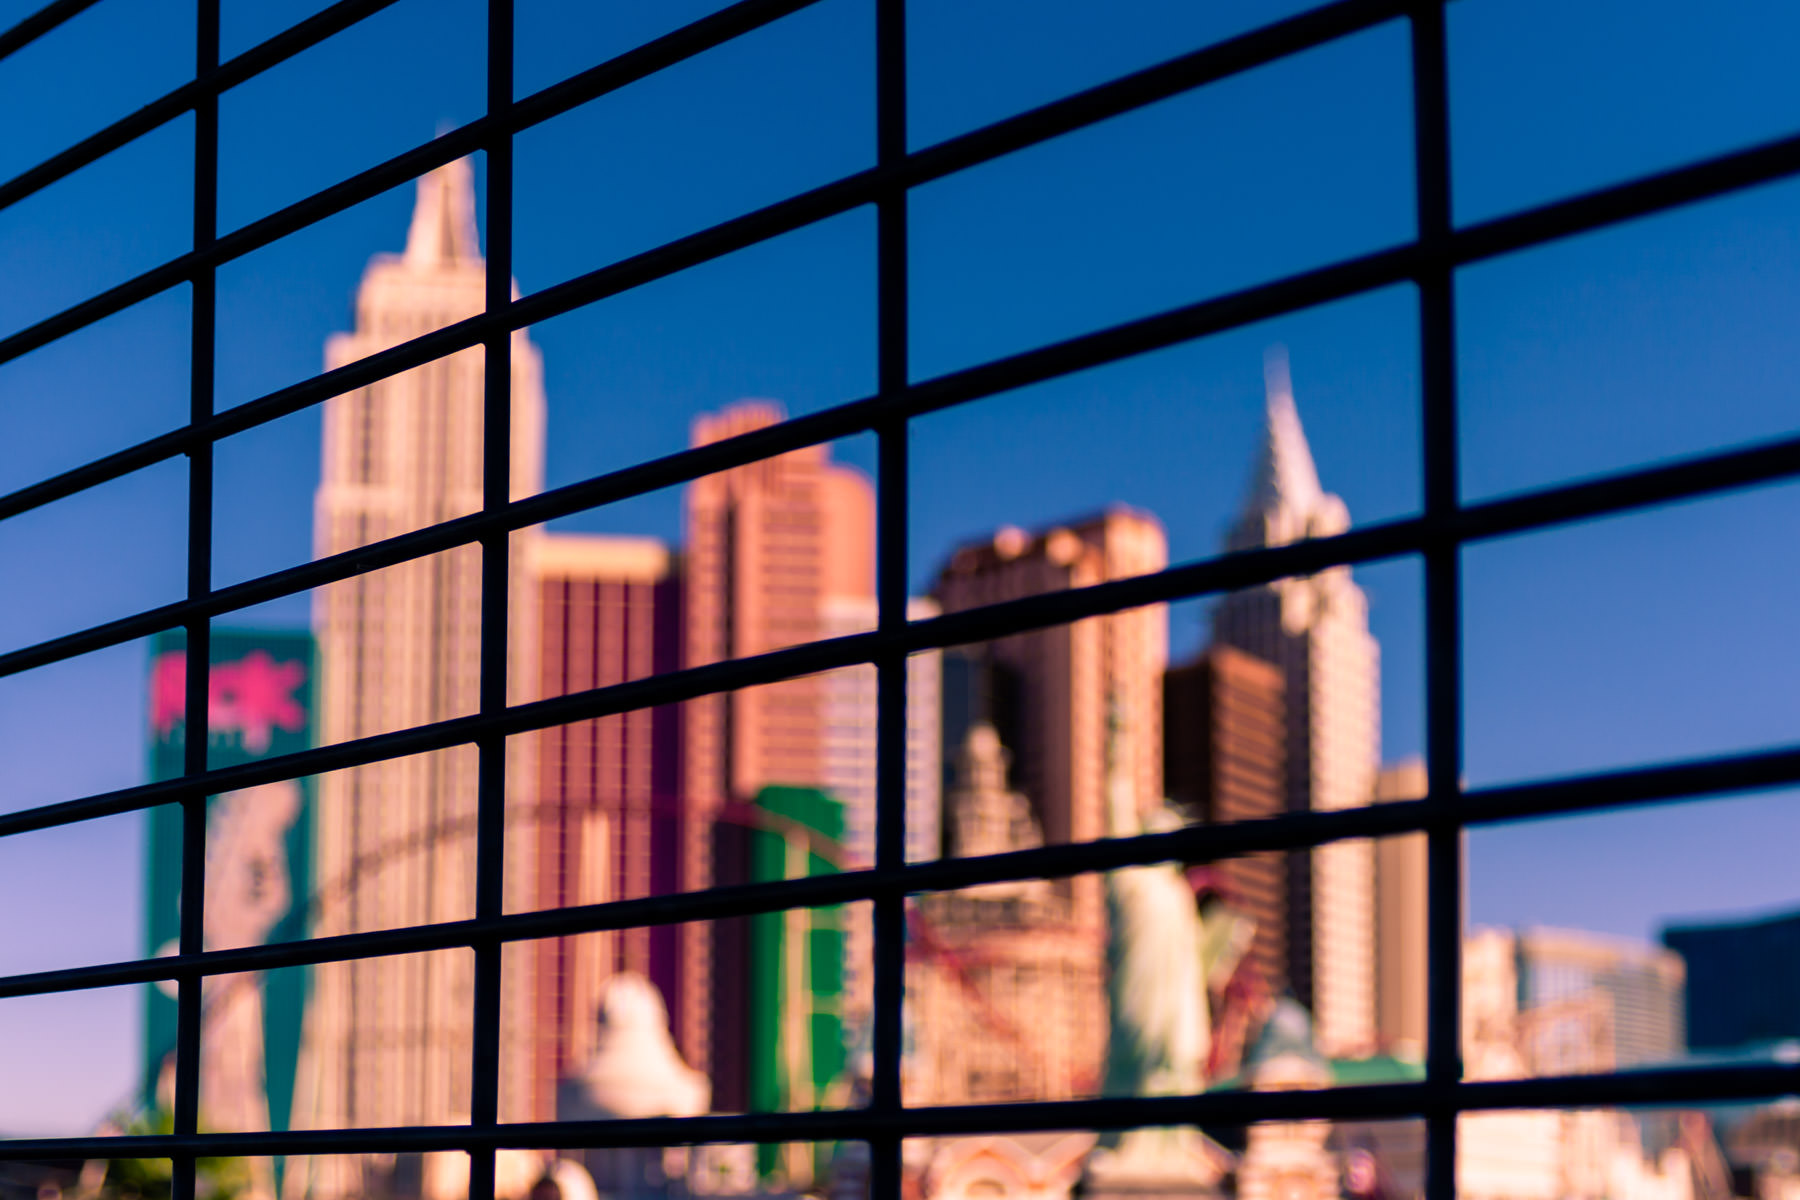 Las Vegas' New York New York Hotel and Casino as seen through the grid of a pedestrian bridge's fencing over Las Vegas Boulevard.